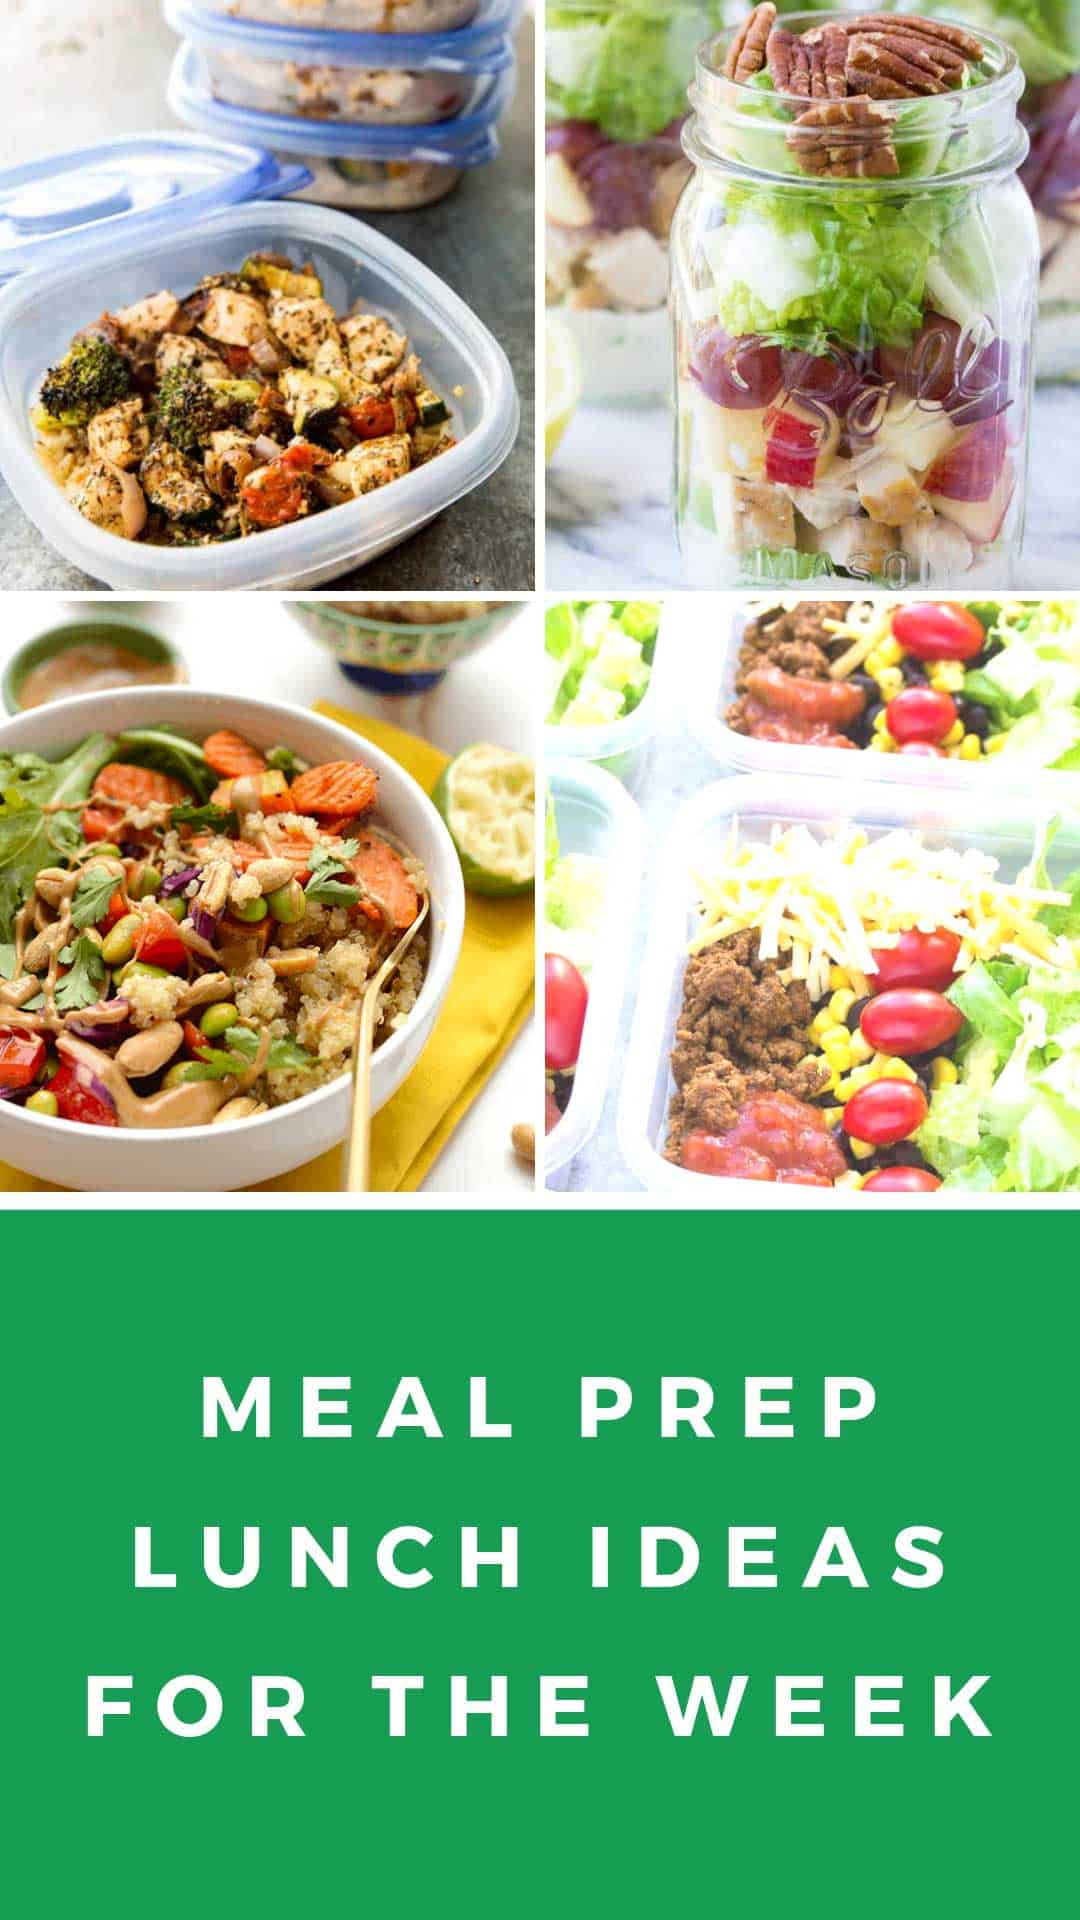 If you need meal prep ideas for lunch for the week we've got all the healthy recipes you could ever want! #mealprep